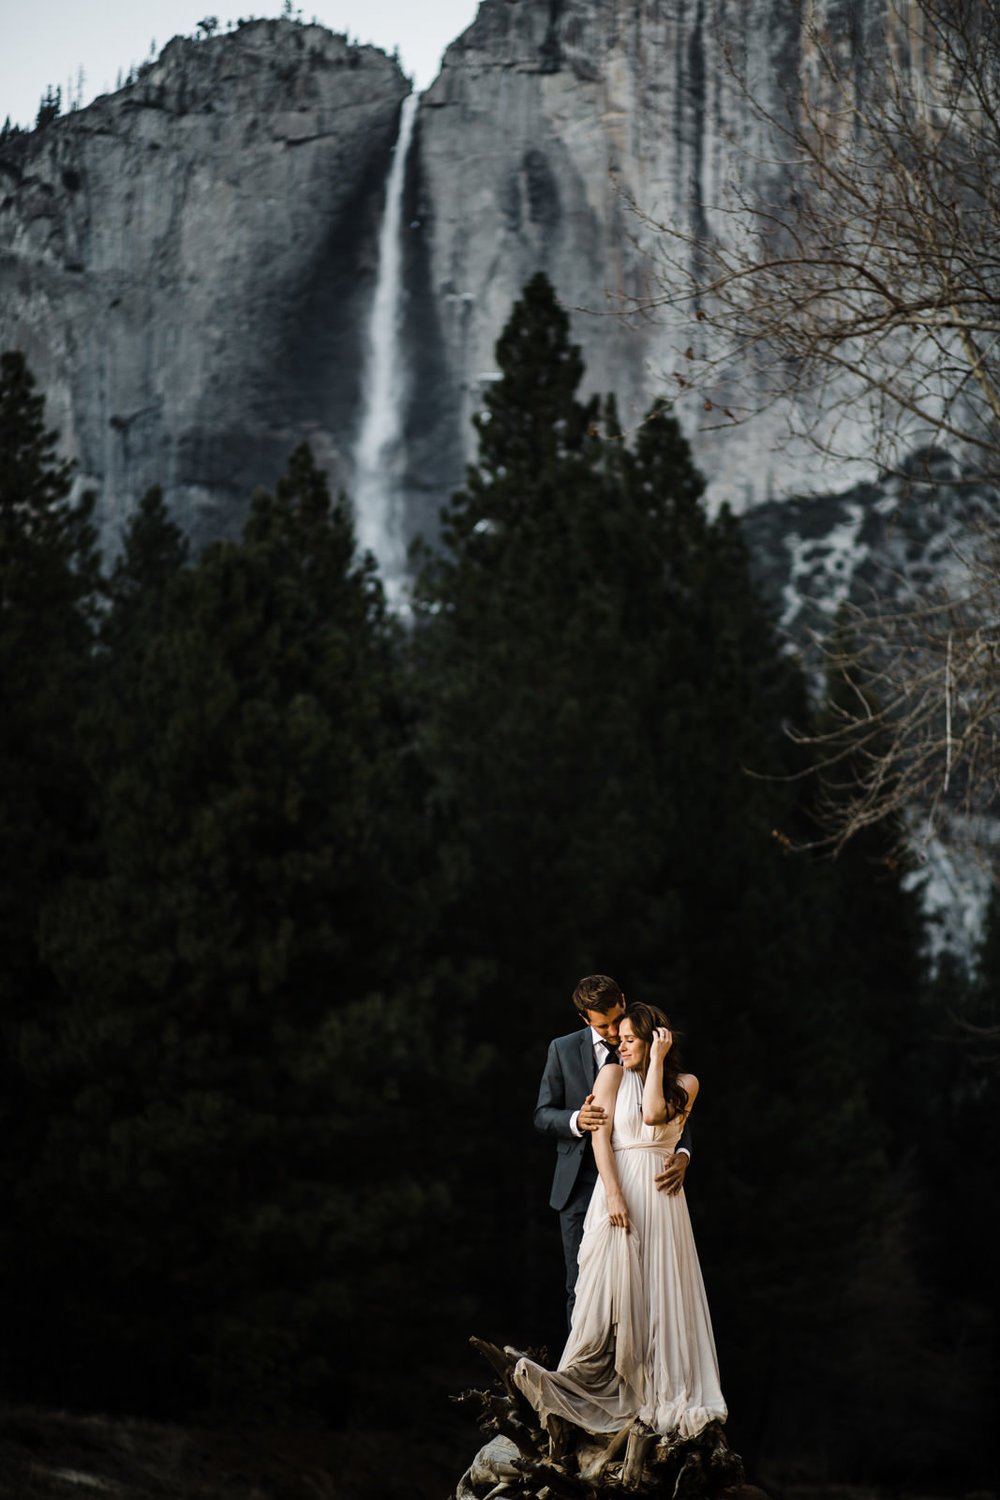 winter-elopement-california-intimate-adventure-photographer-yosemite-national-park-daniela-vallant-wedding-elopement-photographer-intimate-wedding-photographer-yosemite-valley